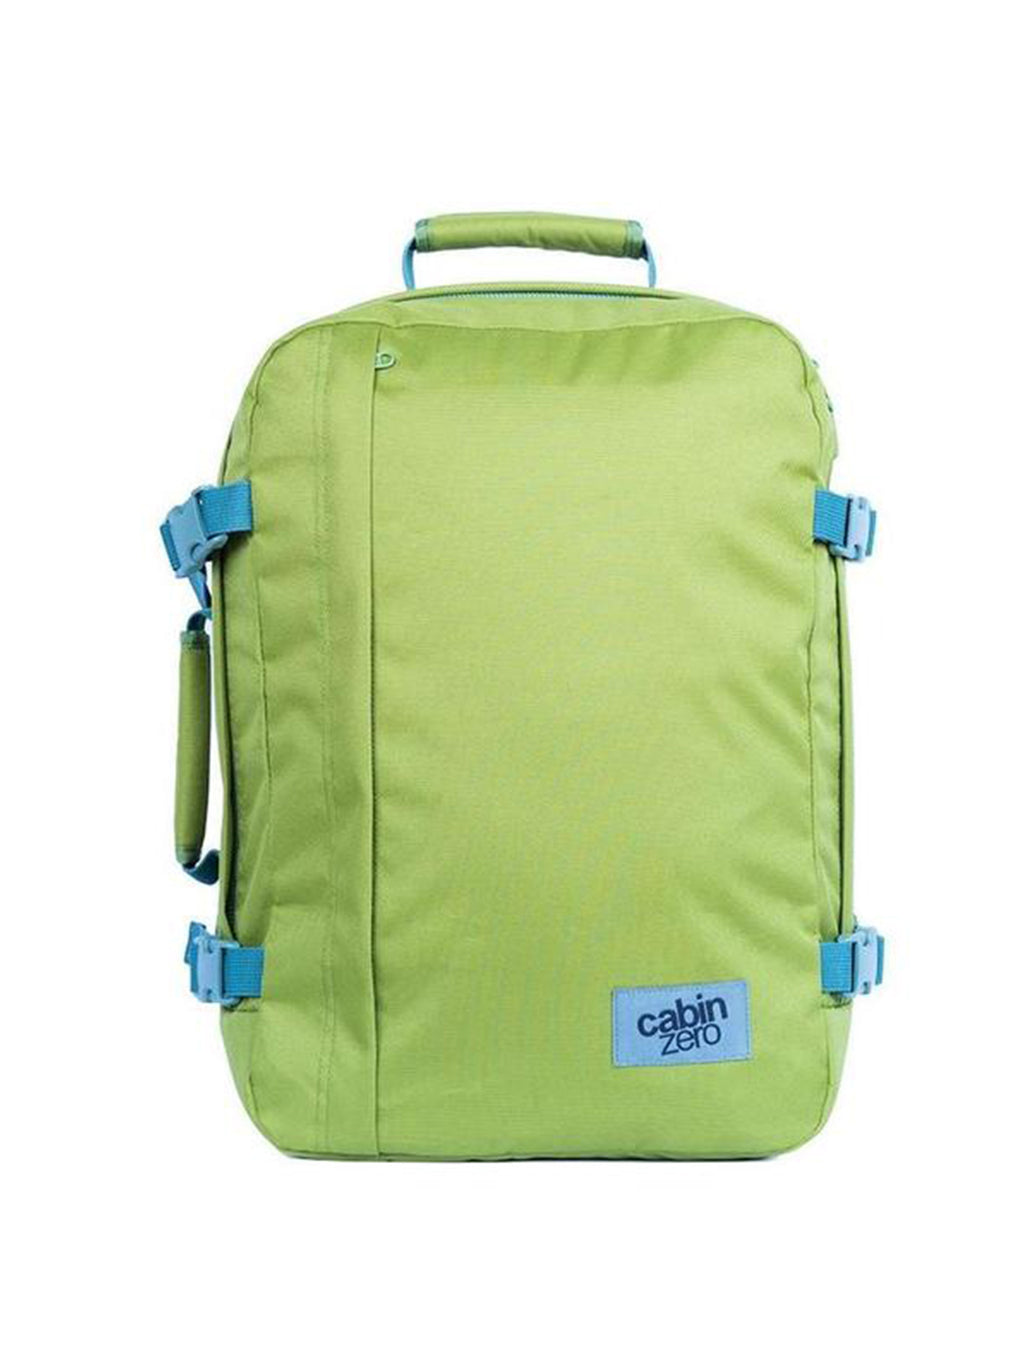 Cabinzero Classic 36L Ultra-Light Cabin Bag in Sagano Green Color